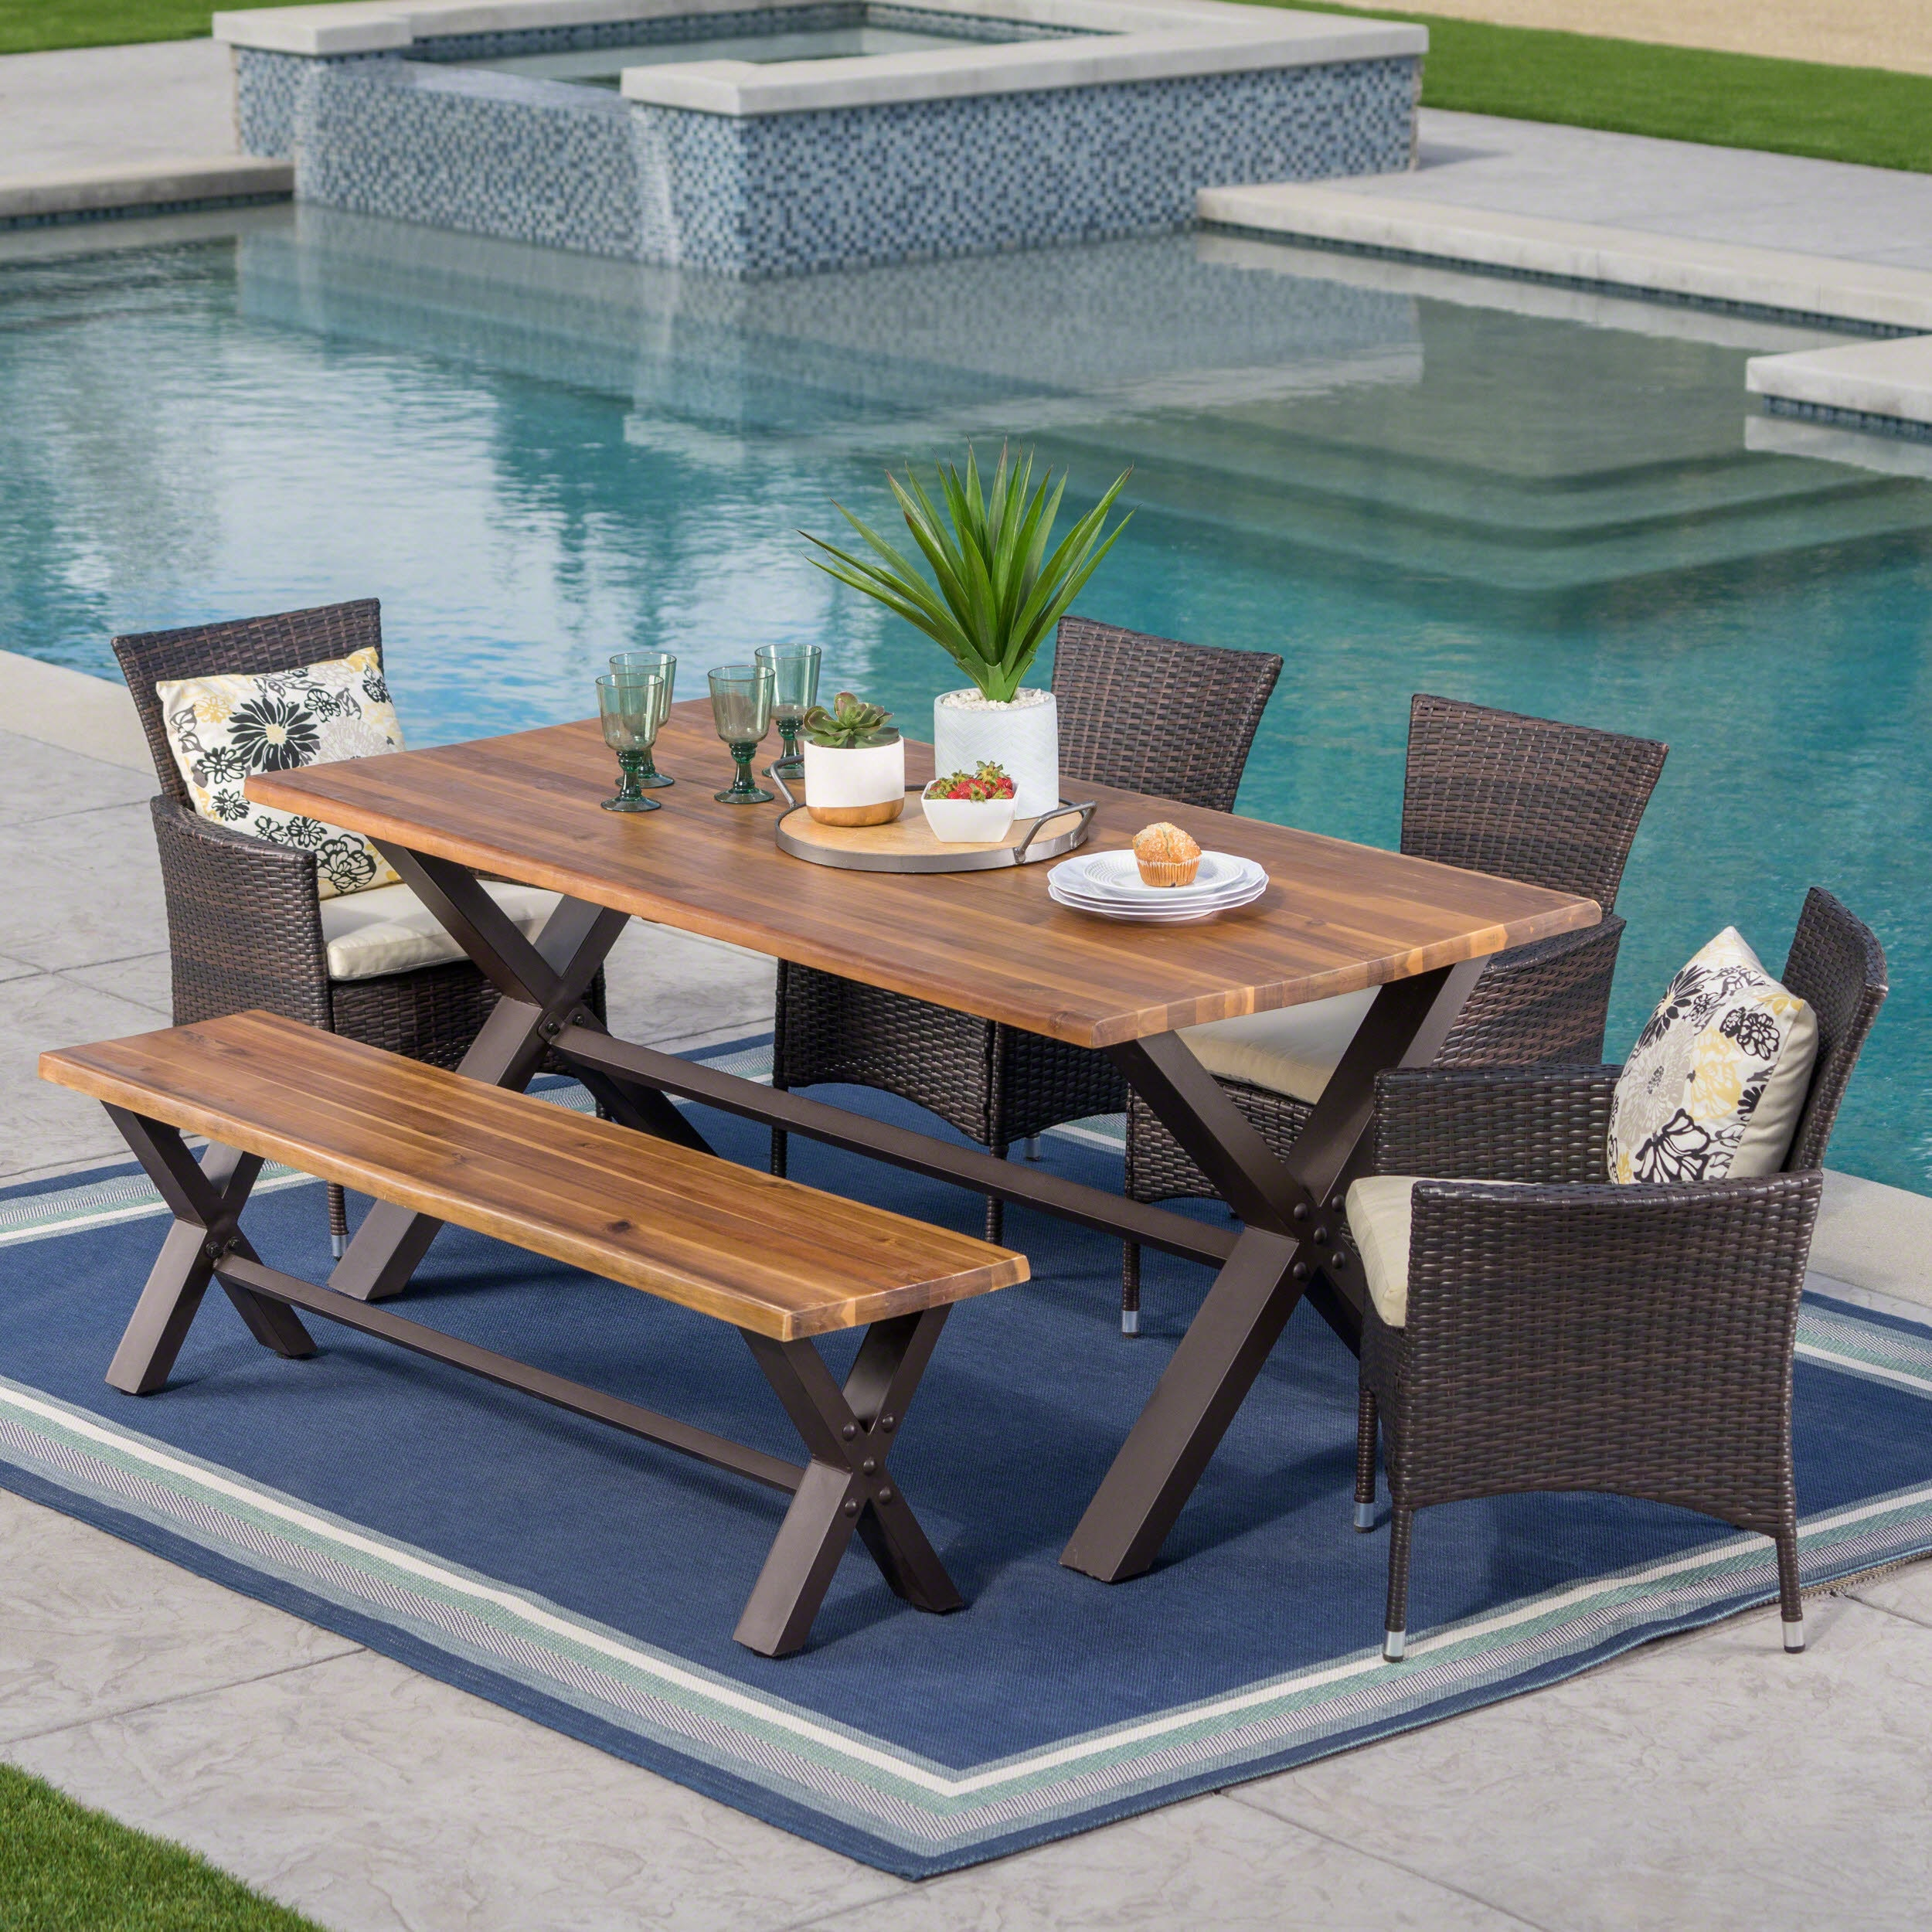 Buy Outdoor Dining Sets Online At Overstockcom Our Best Patio - Outdoor wood rectangular dining table